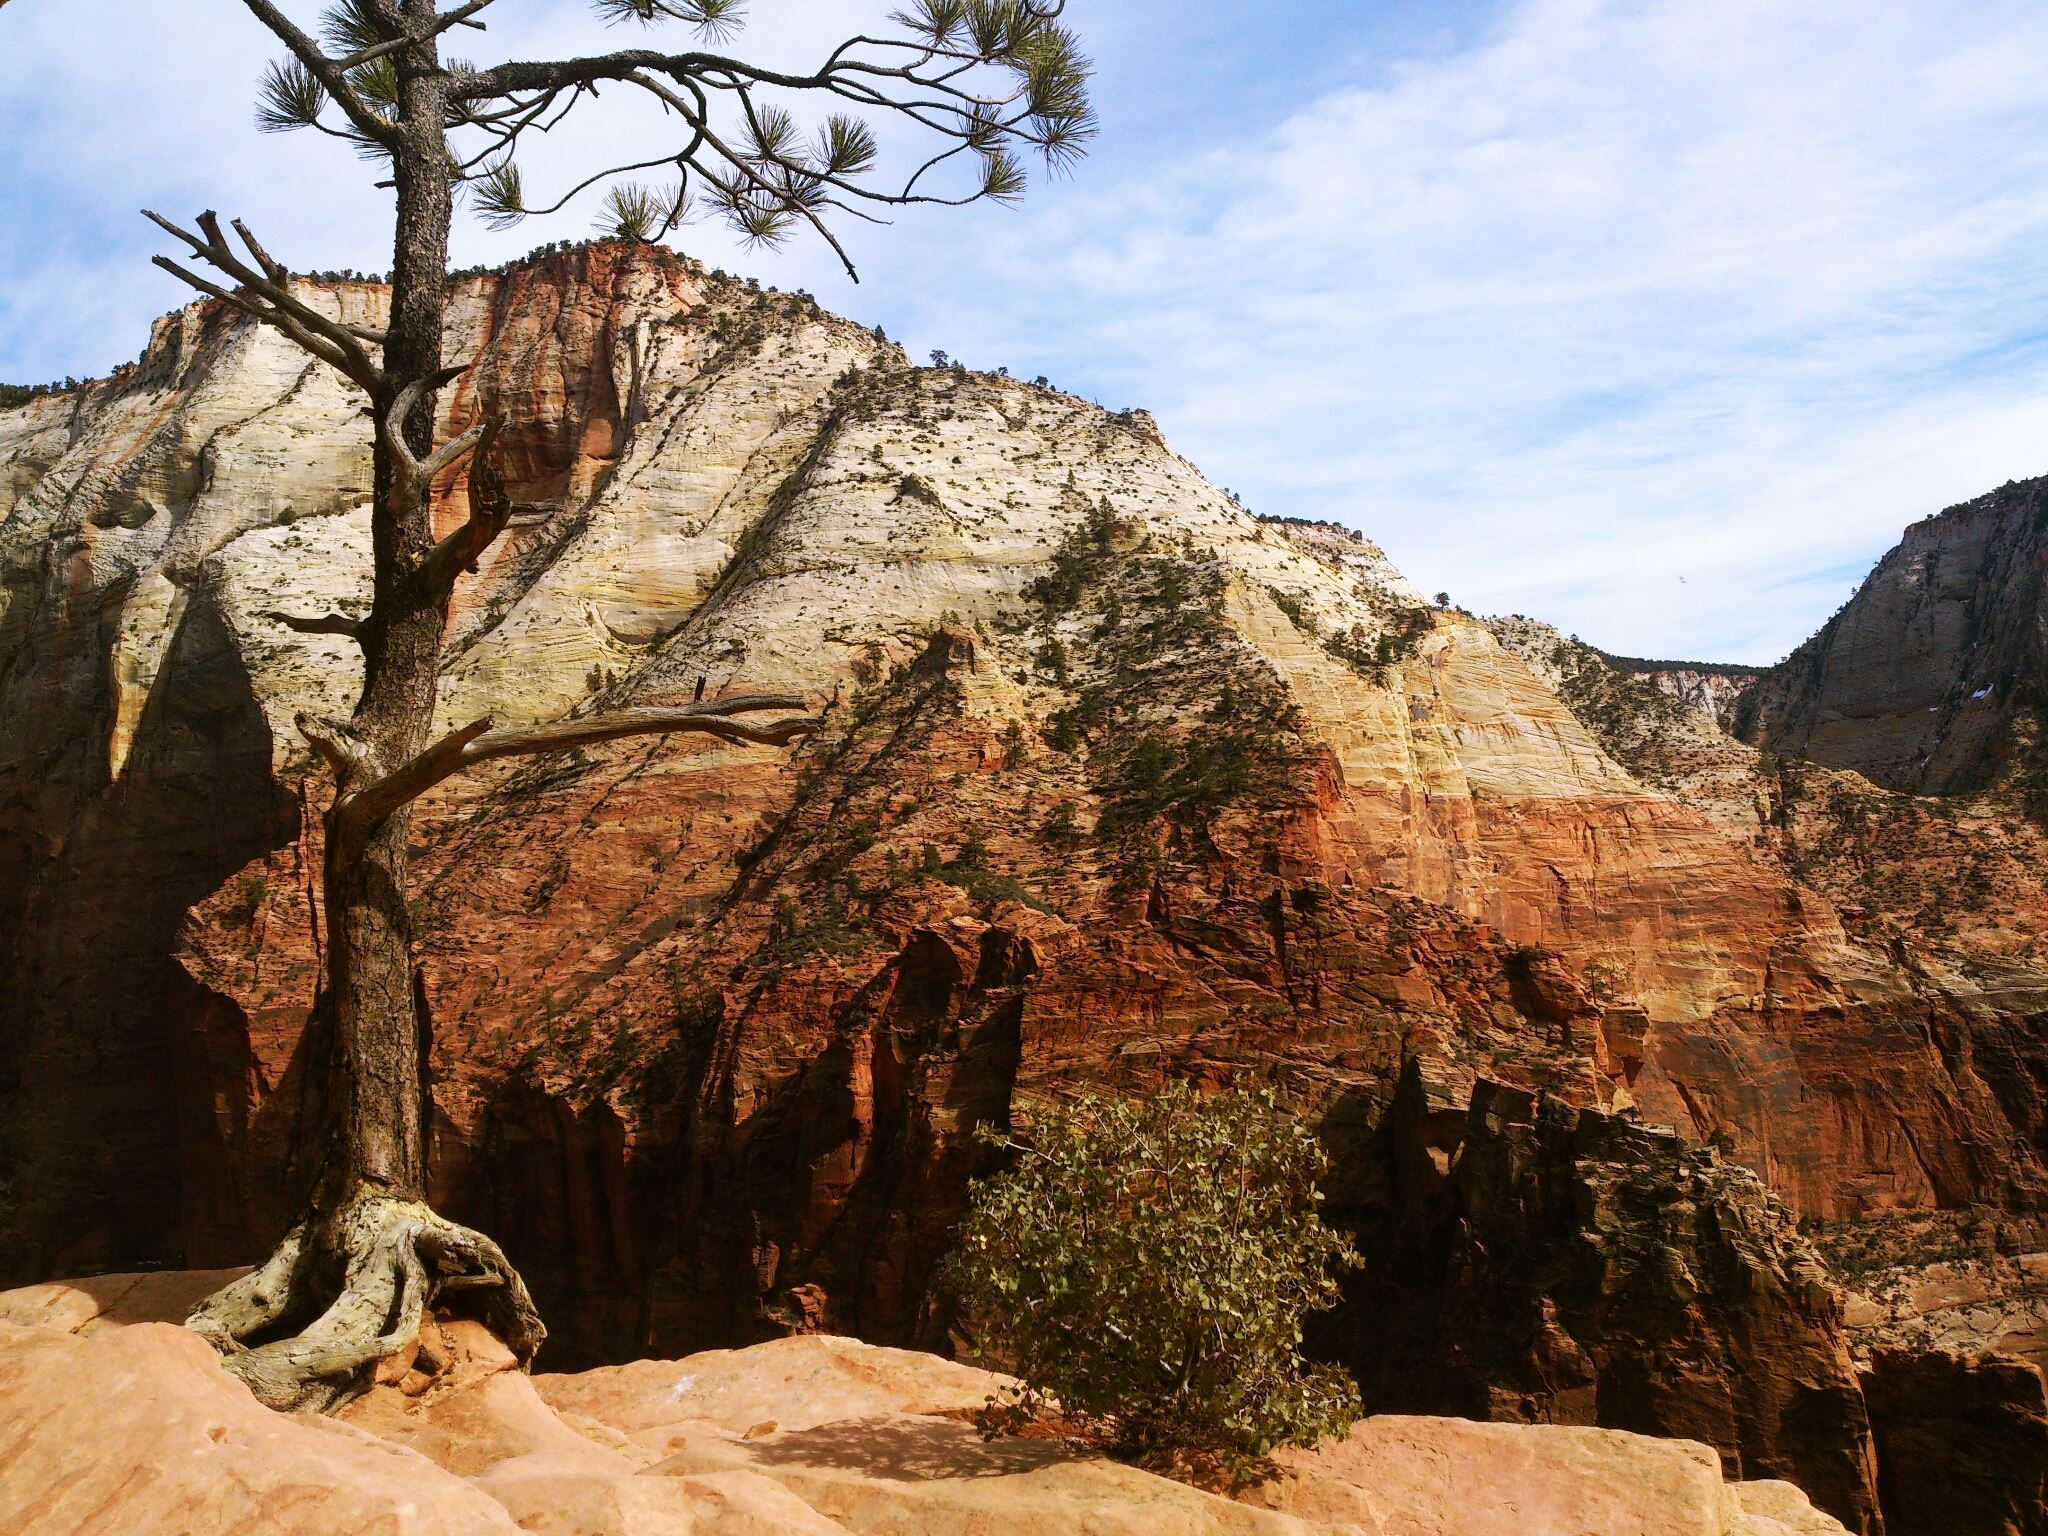 Hiking Angels Landing at Zion National Park